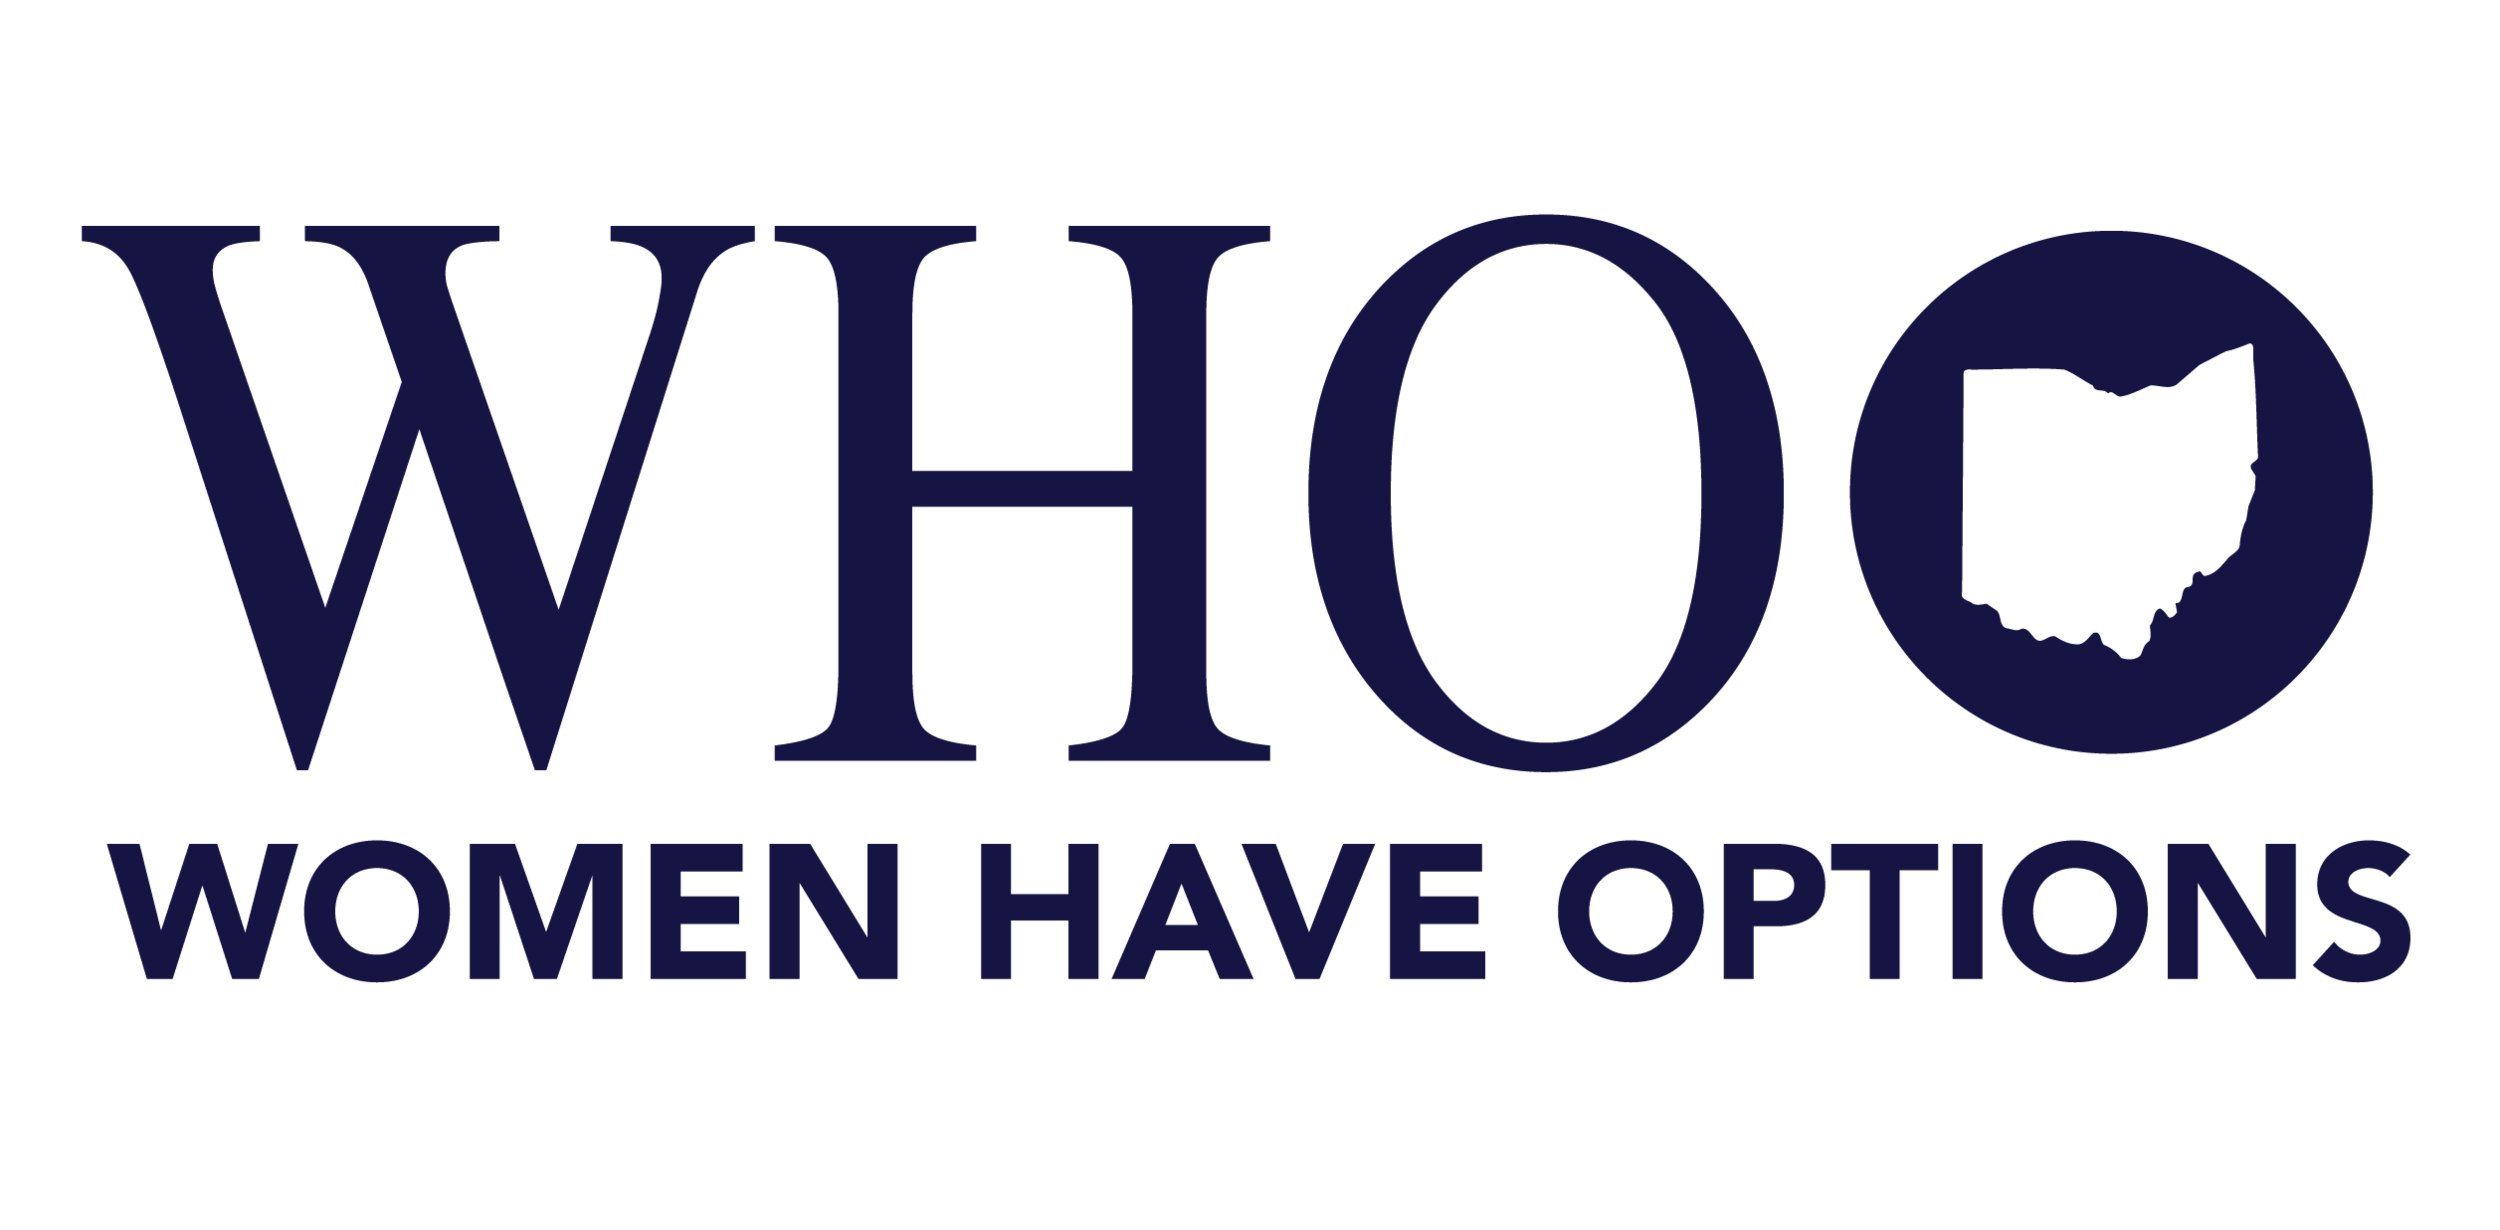 WHO_logo.png